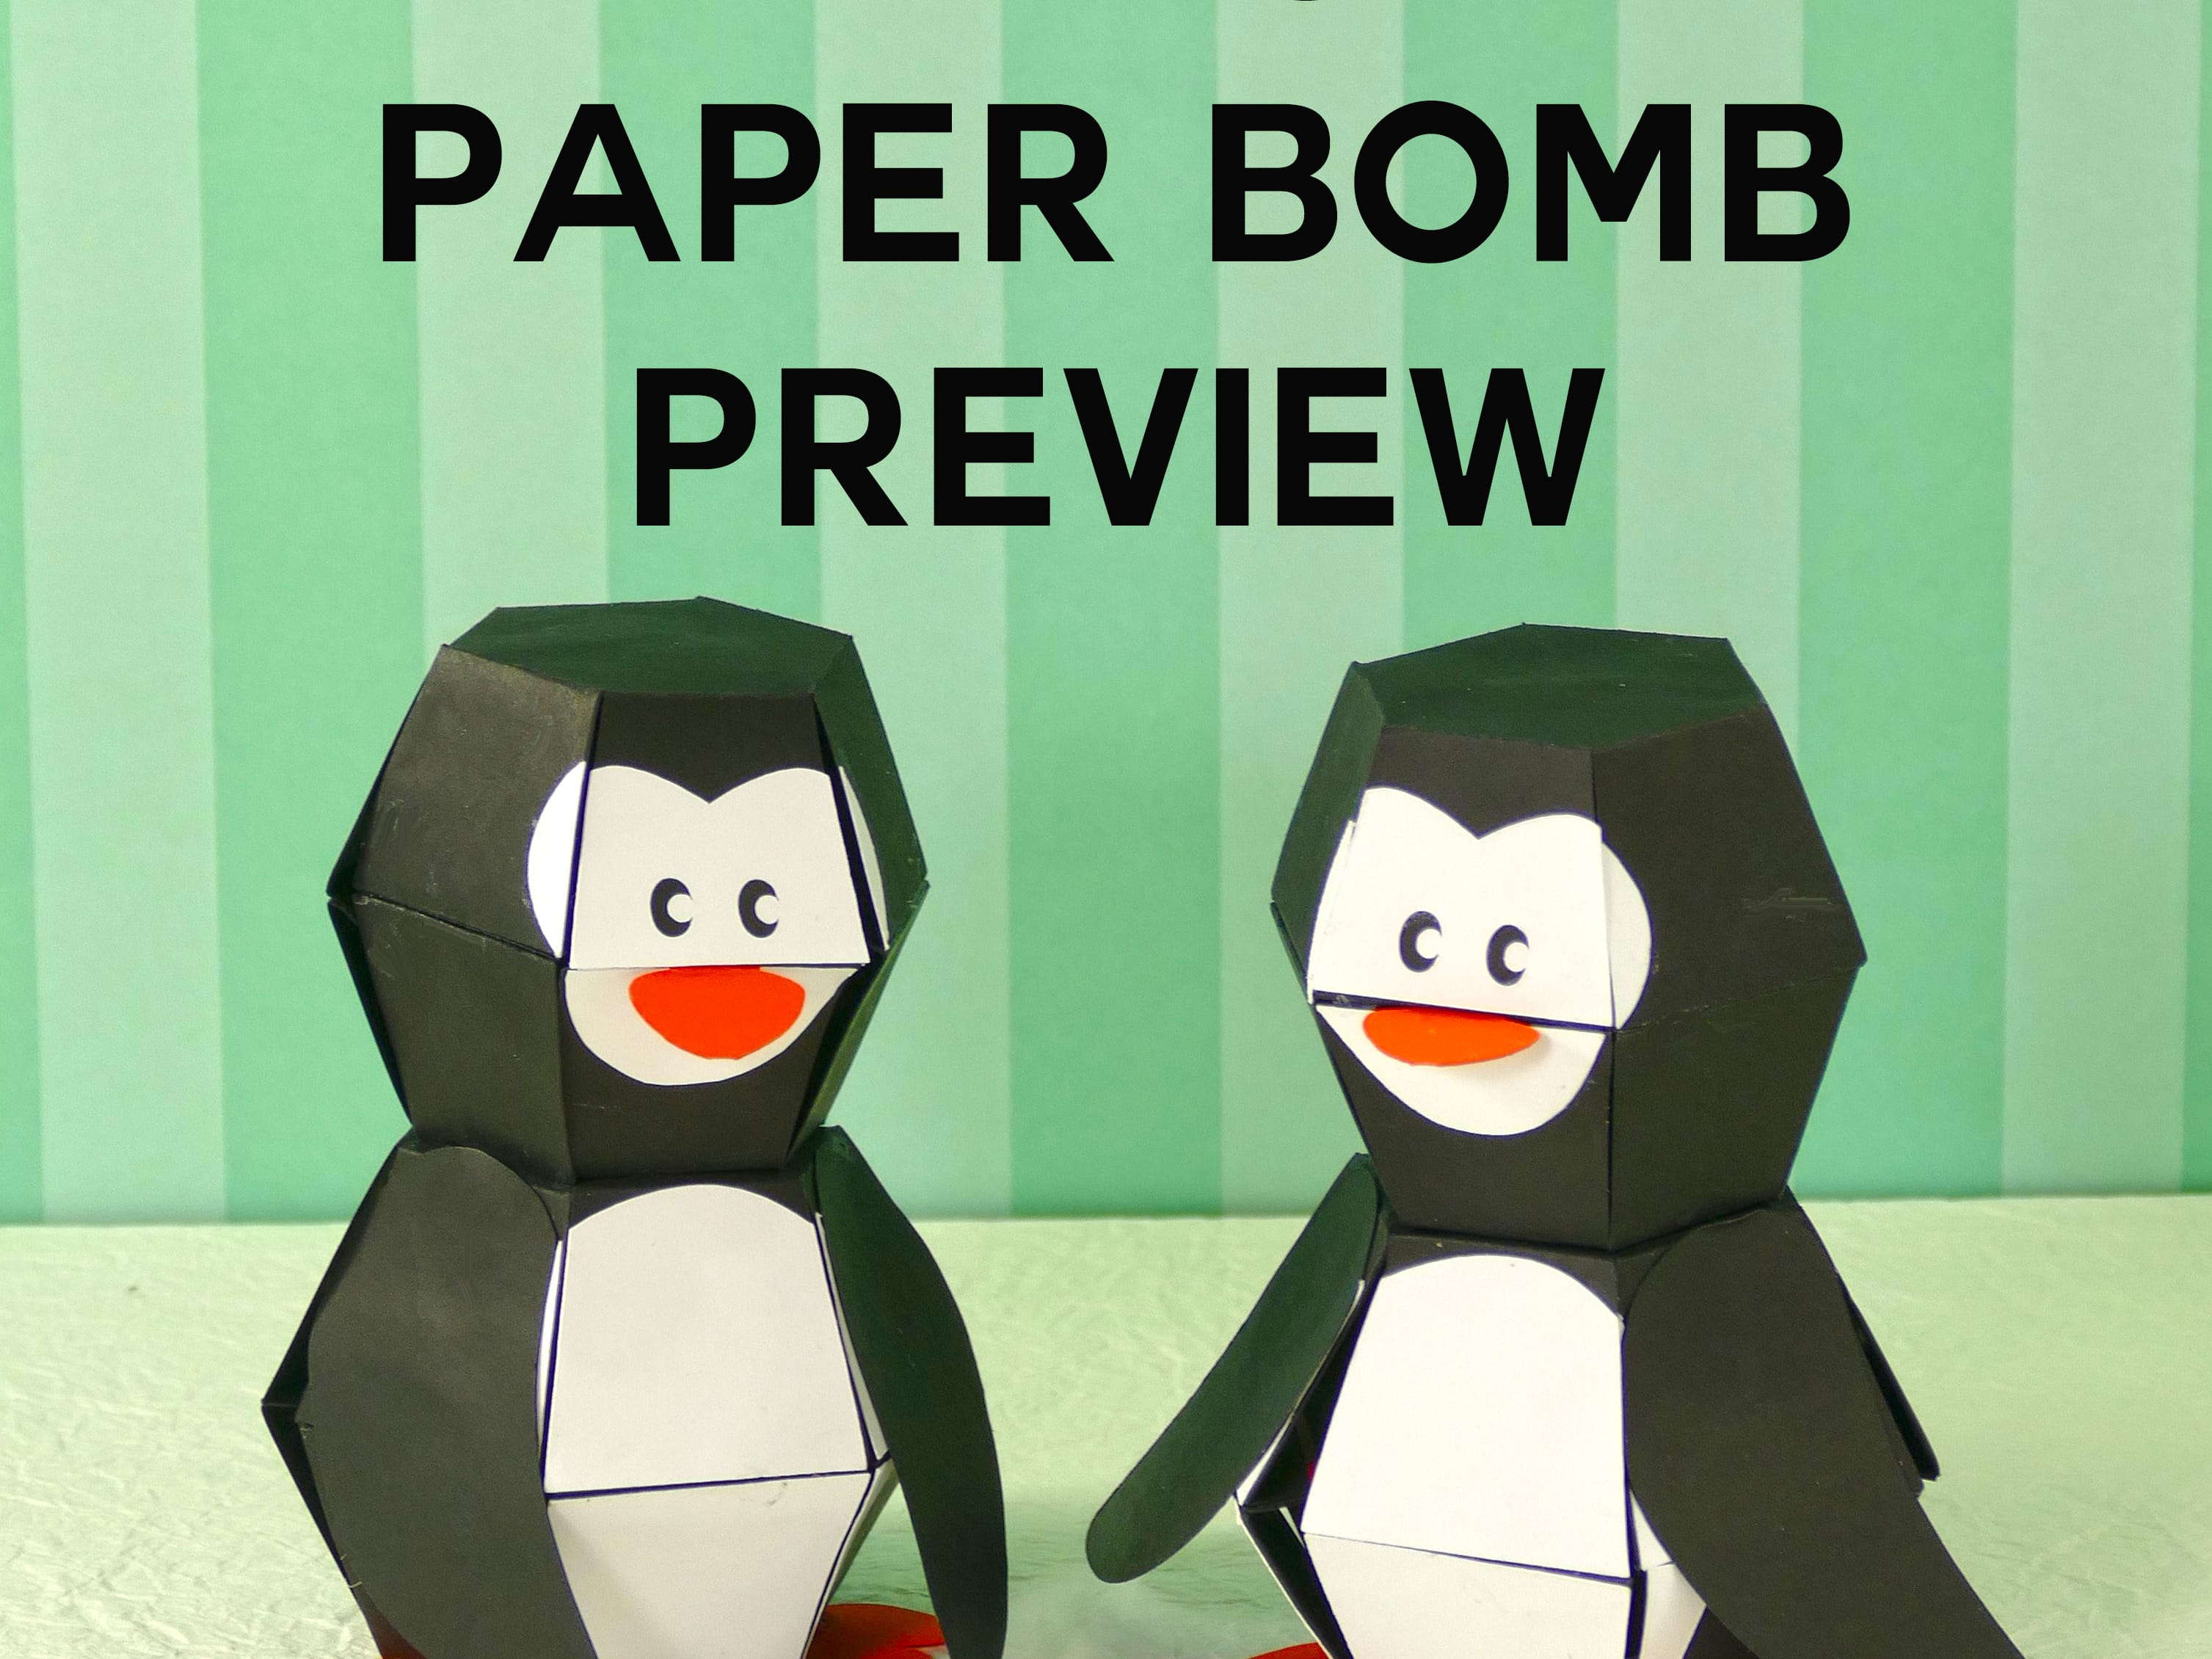 Penguin Paper Bomb Amazing Pop Up Action Jennifer Maker 3d Origami Animation Diagrams Animated Diagram To Fold A